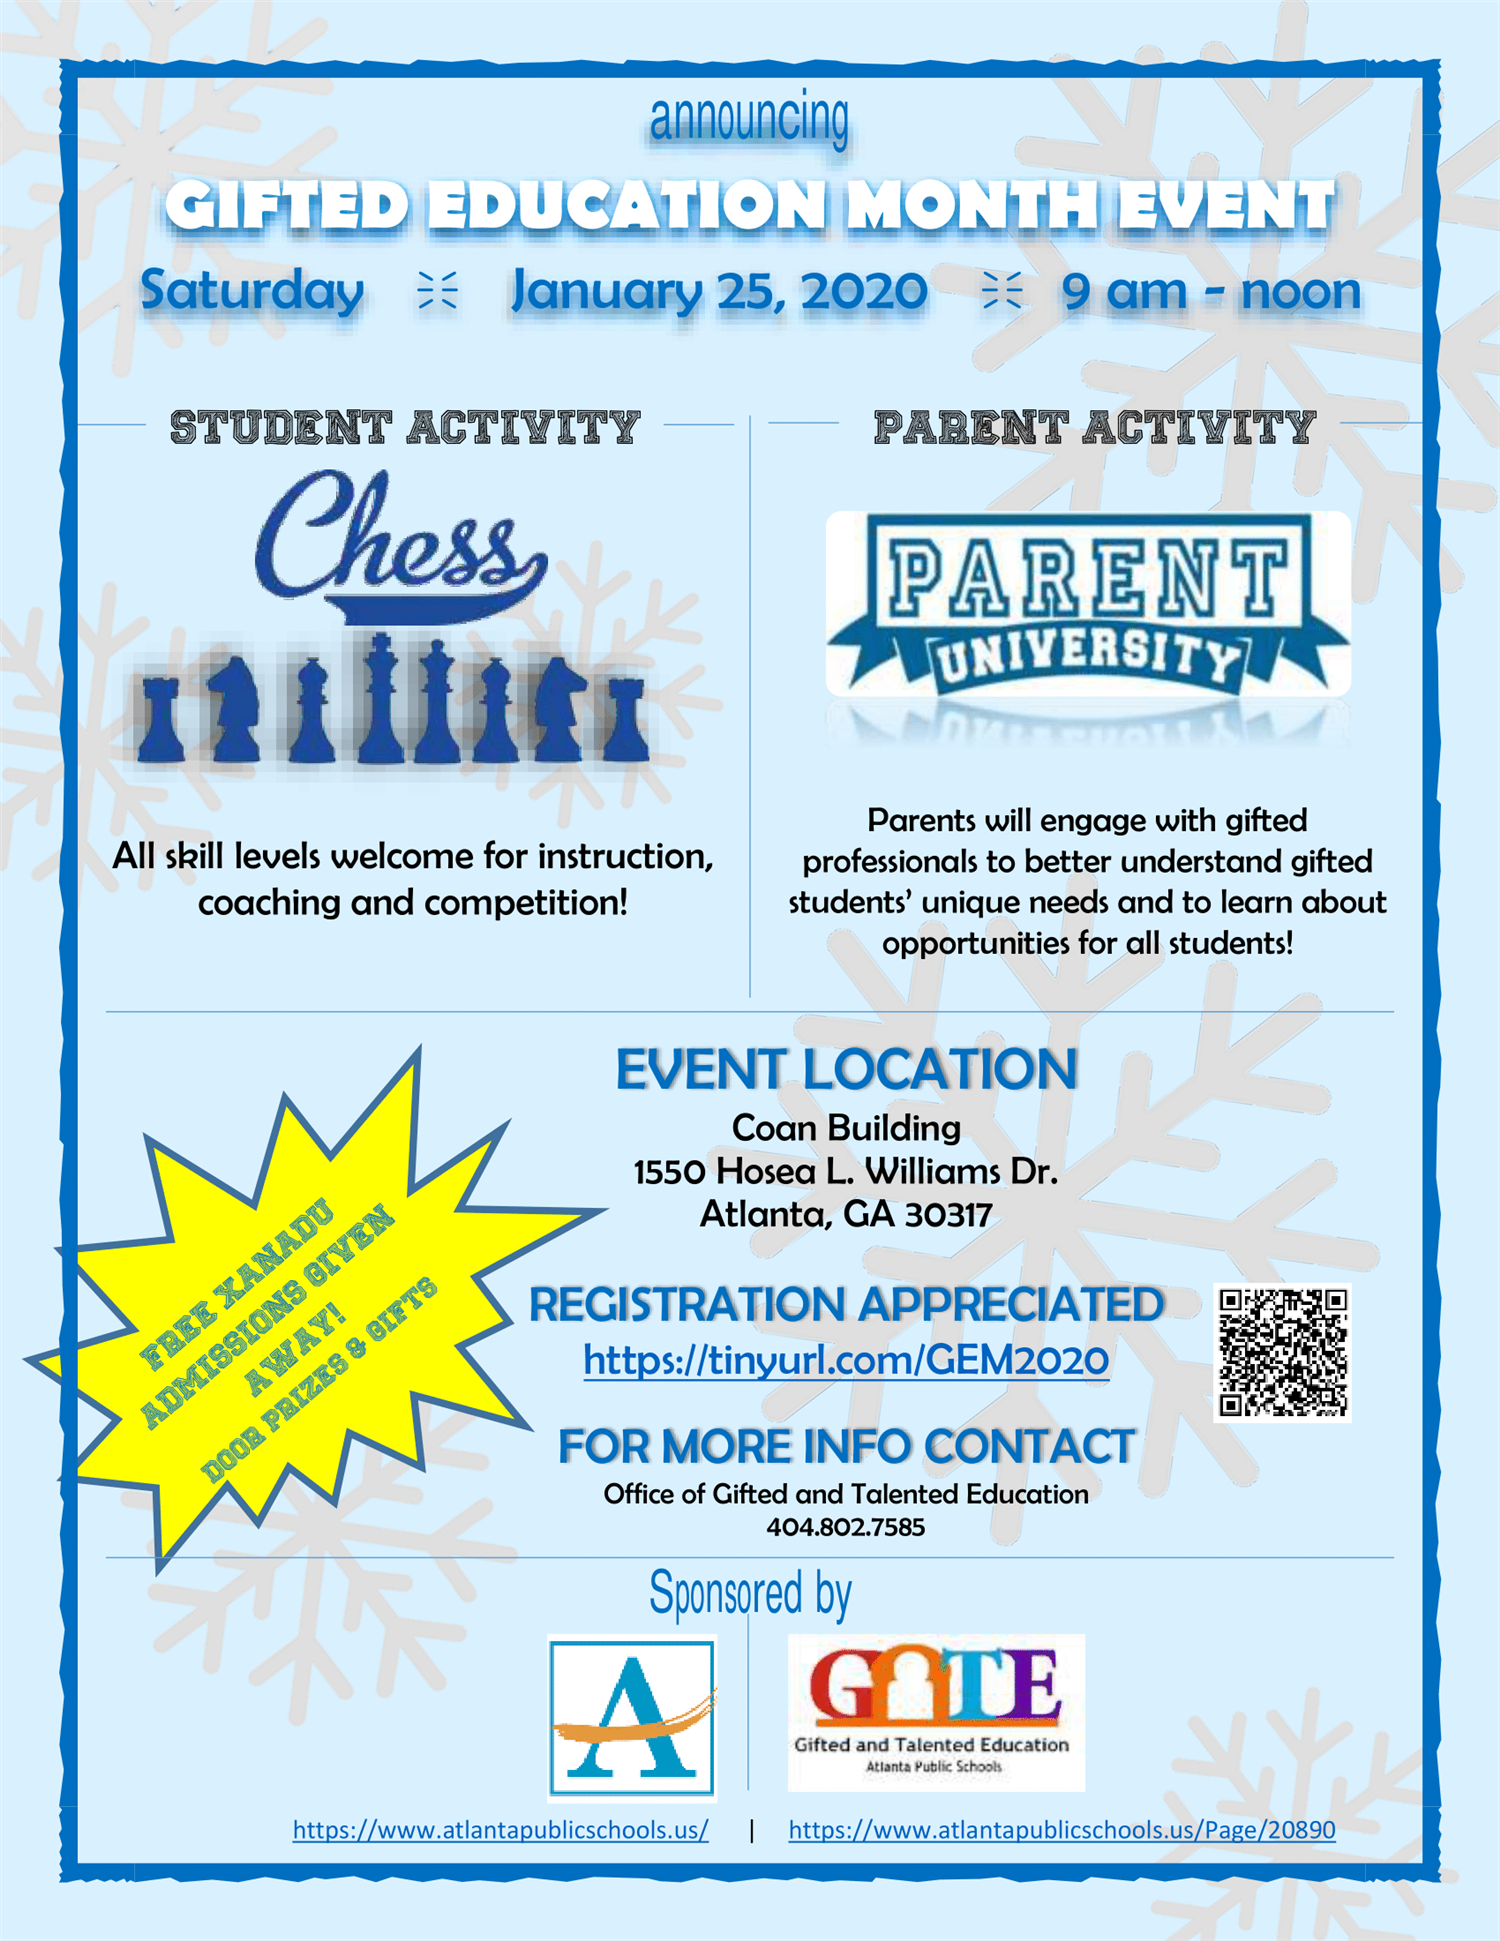 Gifted Education Month Event - Saturday, January 25, 2020